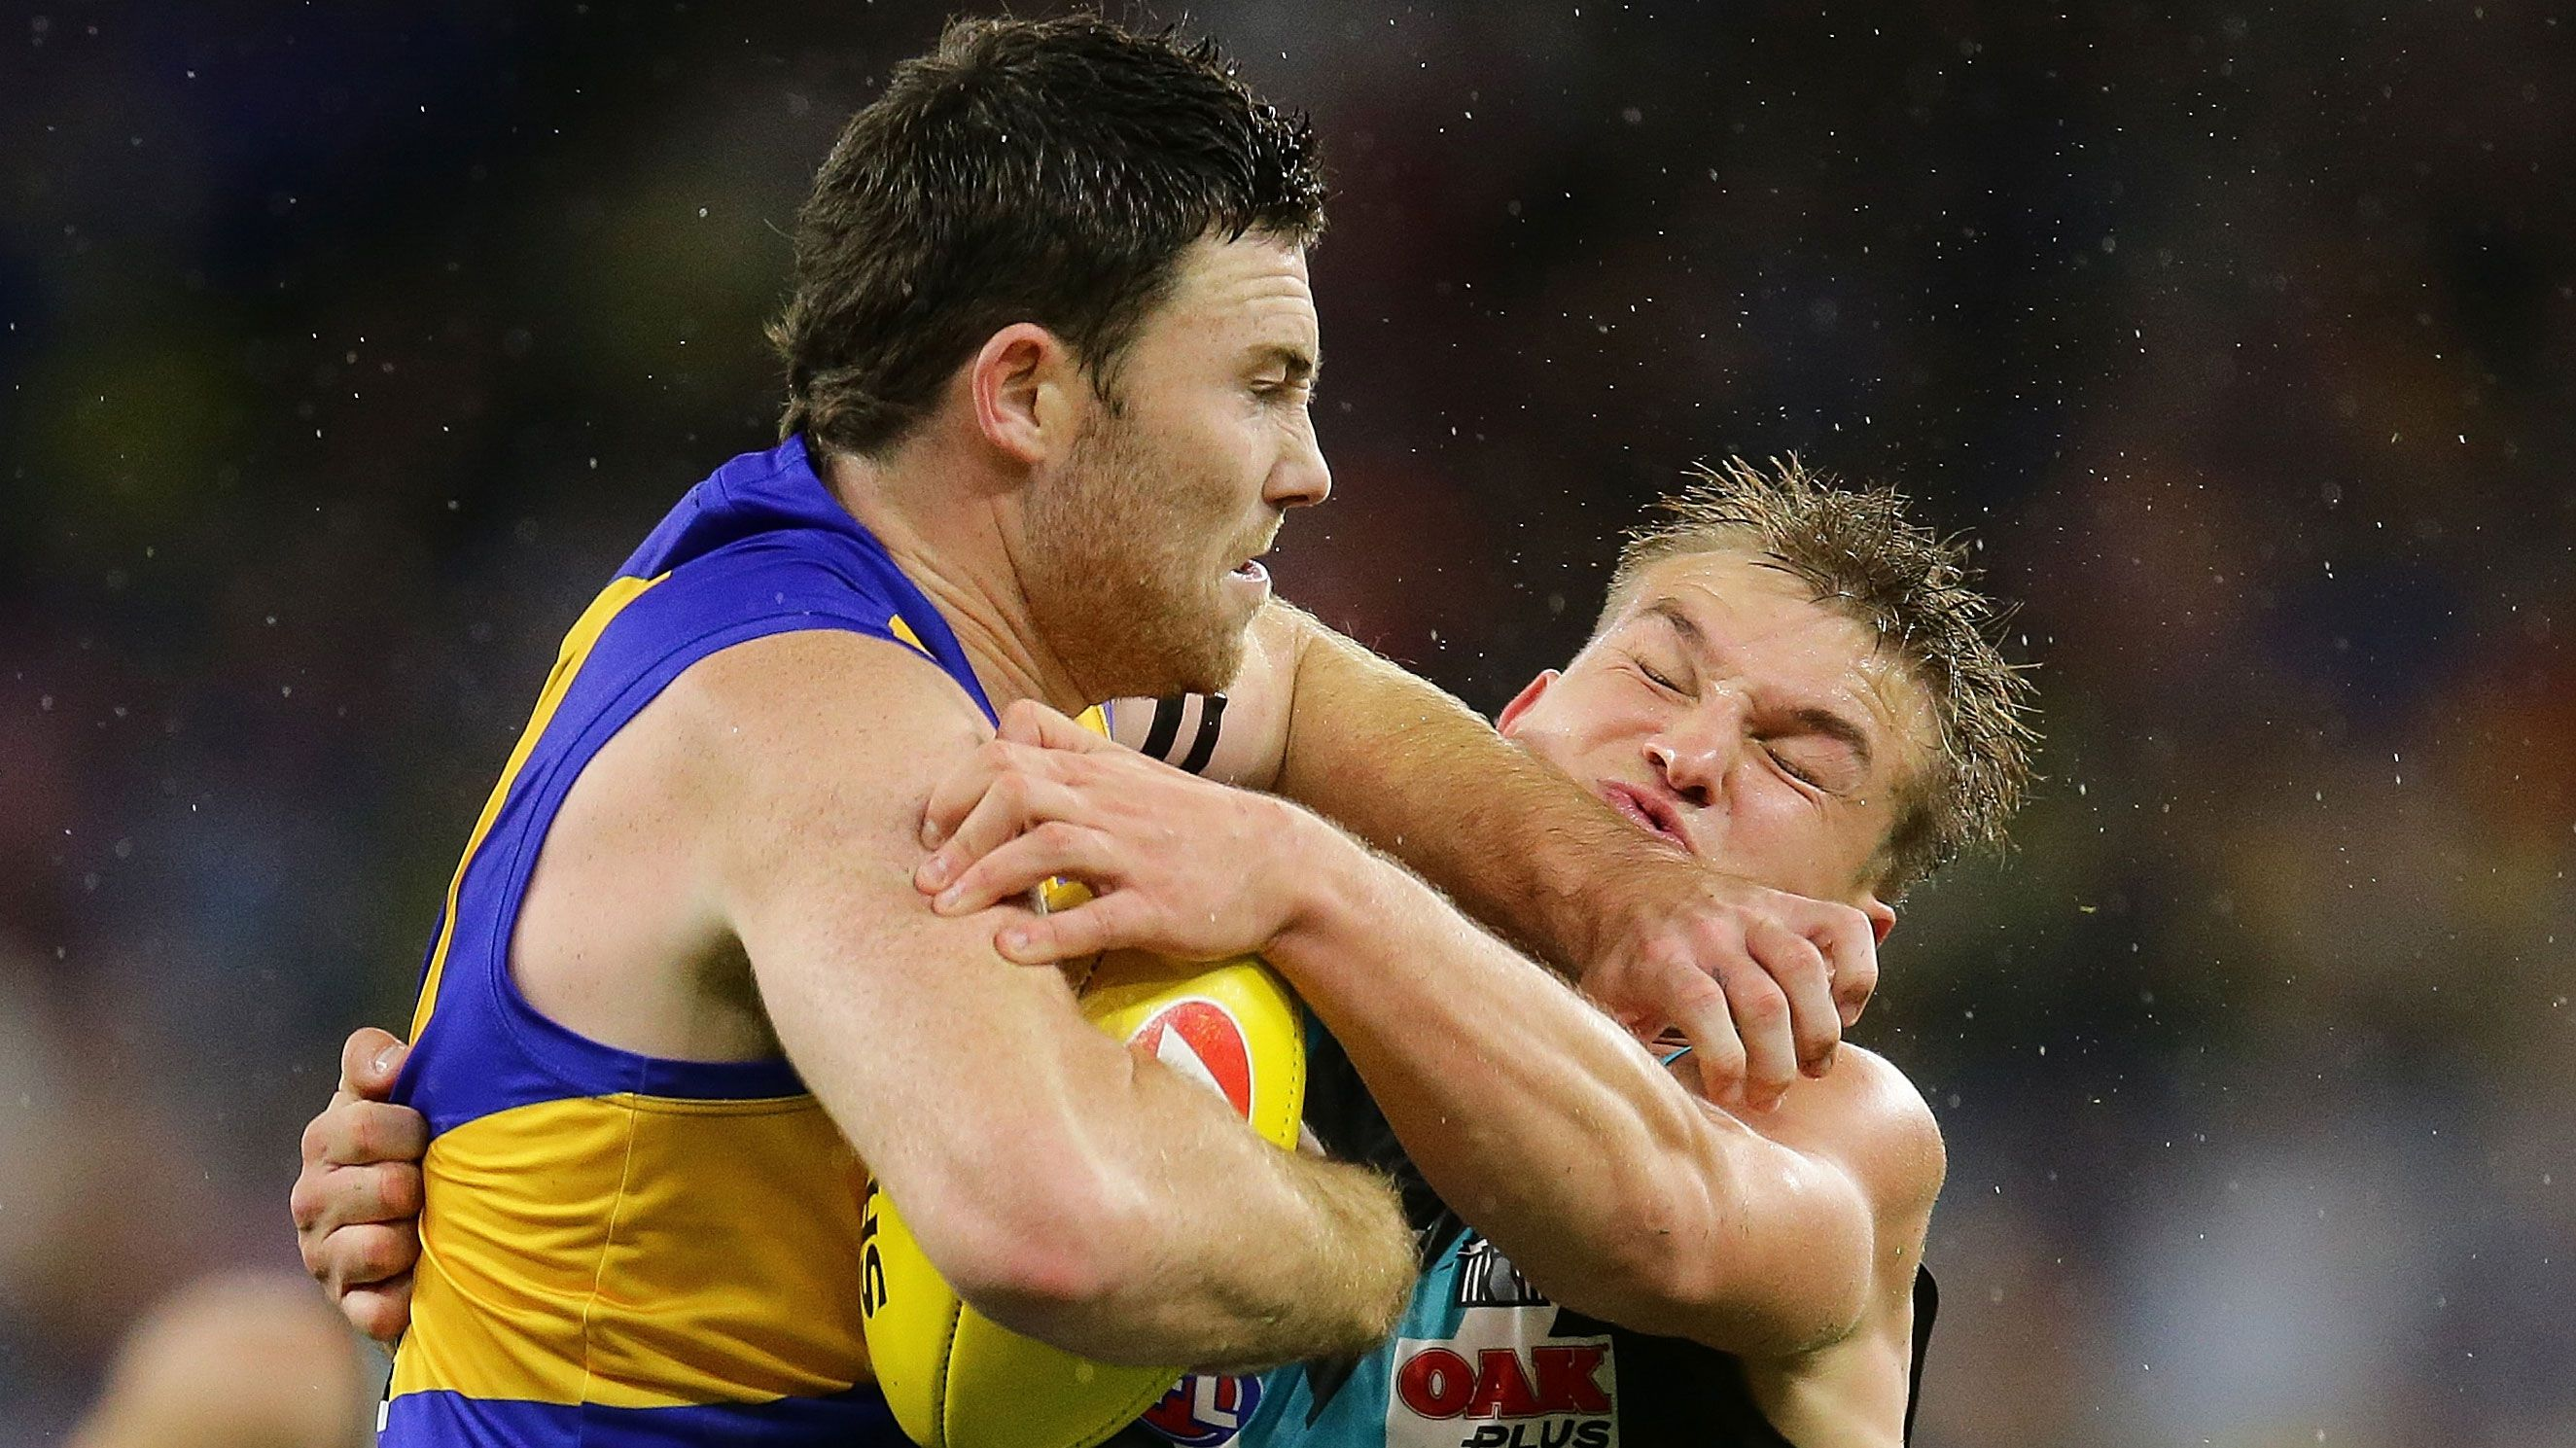 West Coast Eagles premiership star Jeremy McGovern challenged by 'dirty' ball